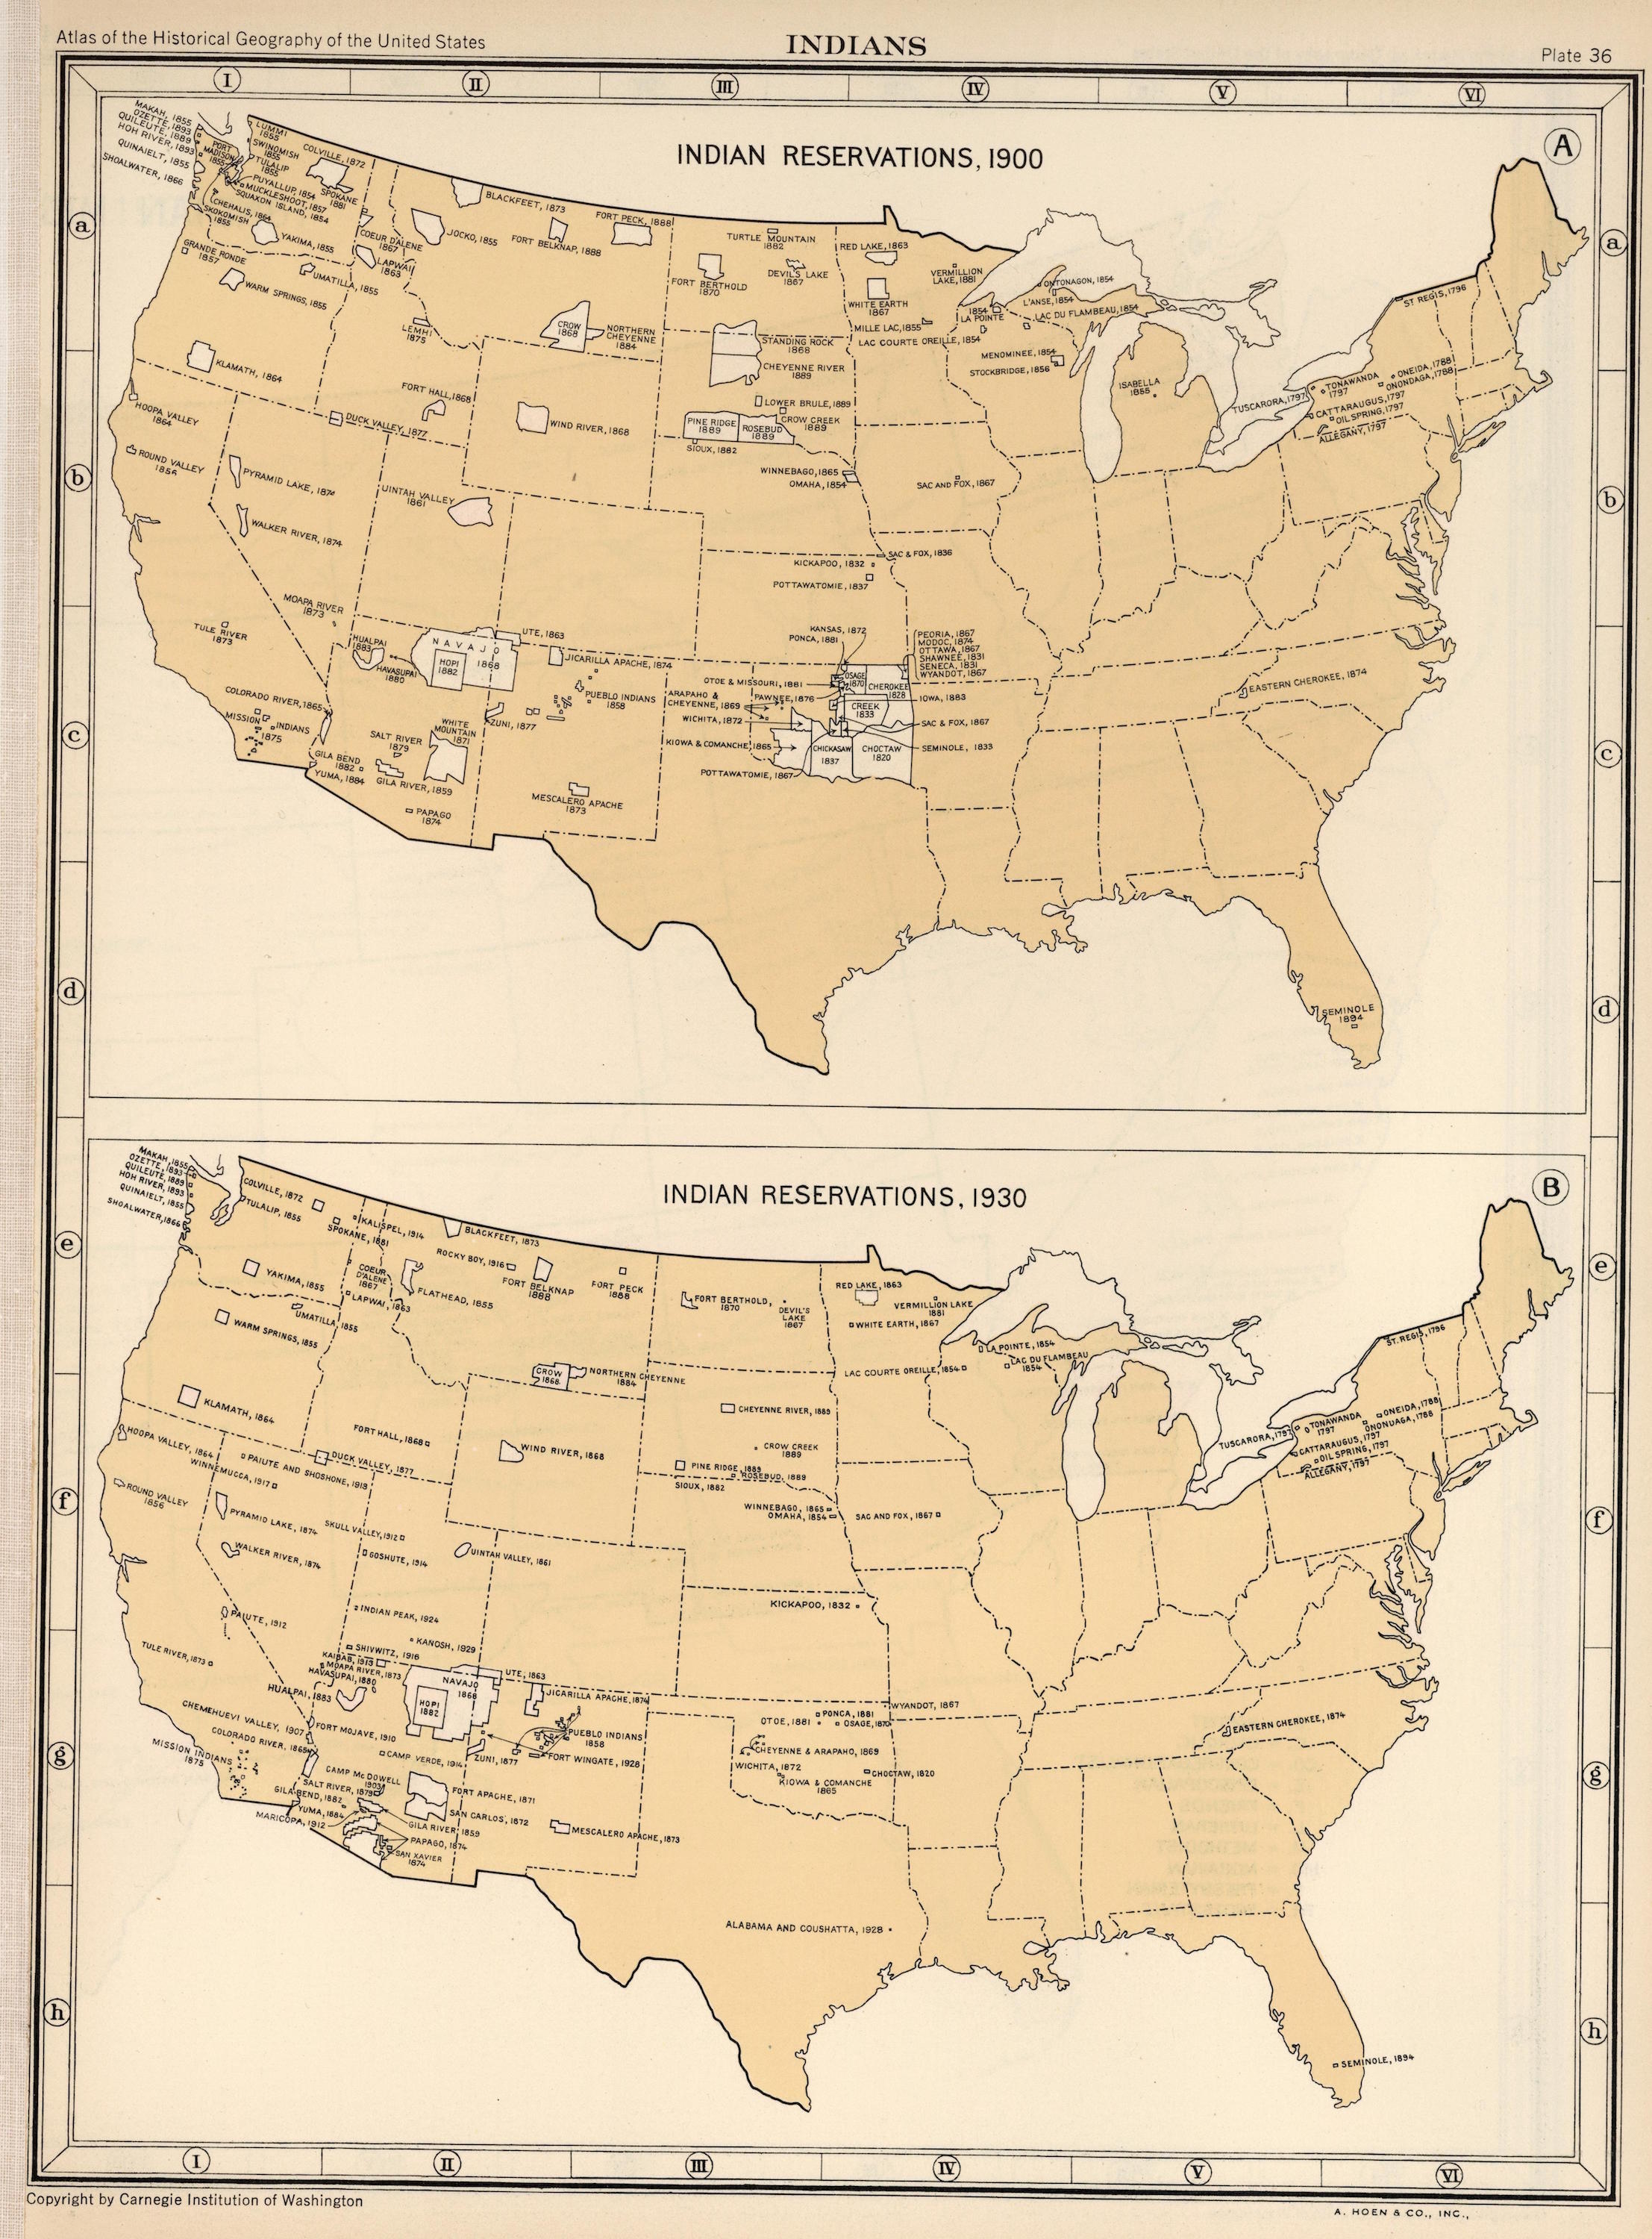 A map showing the location of Indian reservations in 1900 and 1930 Indian Map Of The United States on indian map of north america, india vs united states, enlarged map of united states, map of georgia united states, casinos in united states, indian hogan, india and united states, map of eastern half of united states, full page map of united states, large map of united states, indian territory in the 1800s, recognized tribes united states, indian map of the country, indian south carolina map, casino directory united states, king of united states, indian adobe, indian us map, oklahoma united states, tribal map of united states,